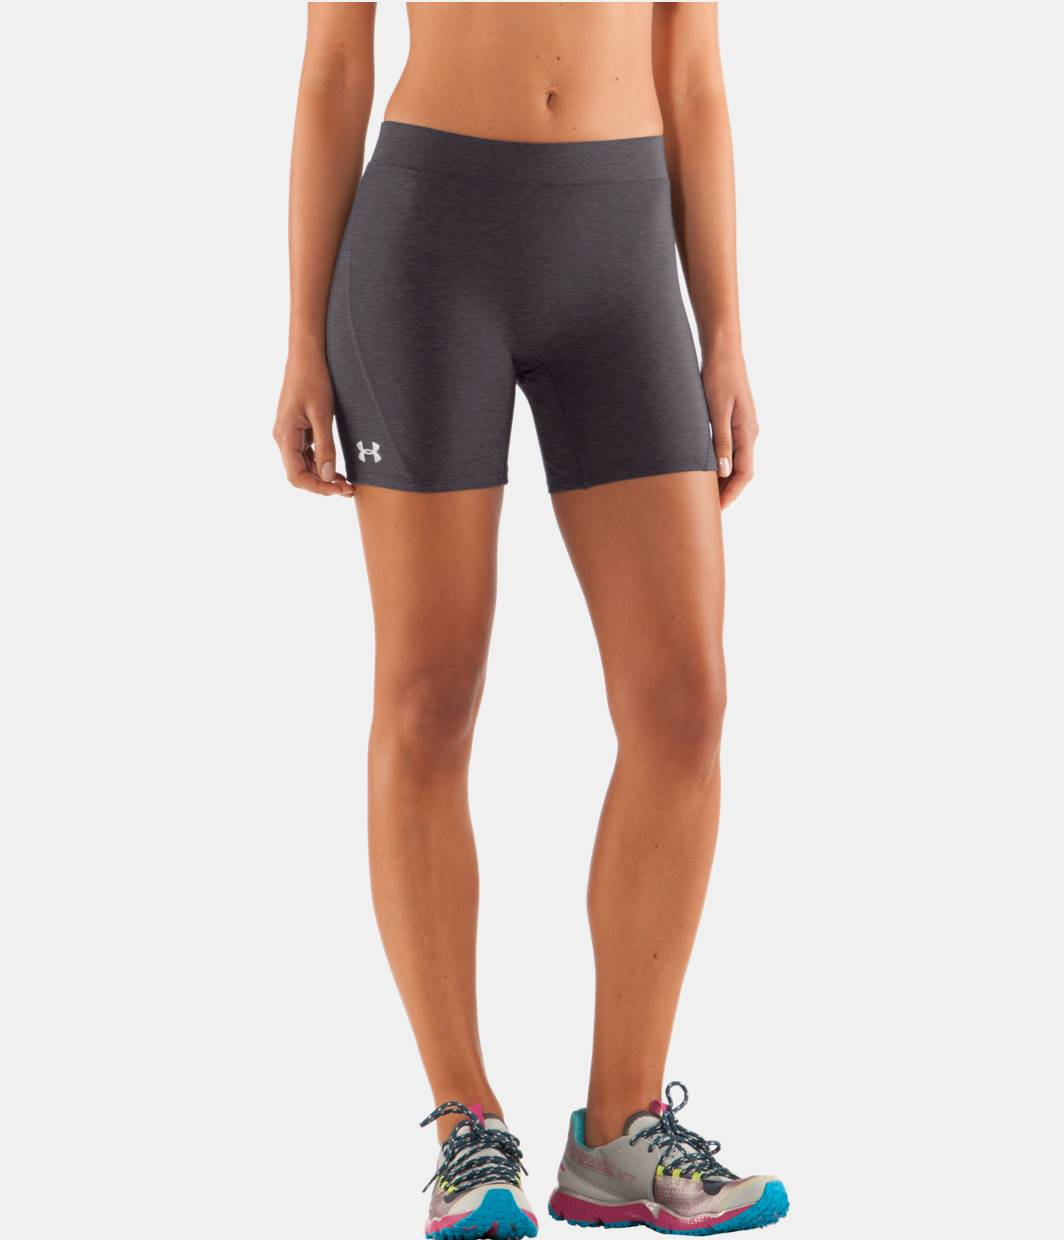 Simple Under Armour HeatGear&194&174 Armour Womens Compression Shorts Are A Technical Baselayer Wear That Can Boost You To New Levels Of Training Or Fitness Performance The UA Compression Fit Works Like A Second Skin Which Supports Your